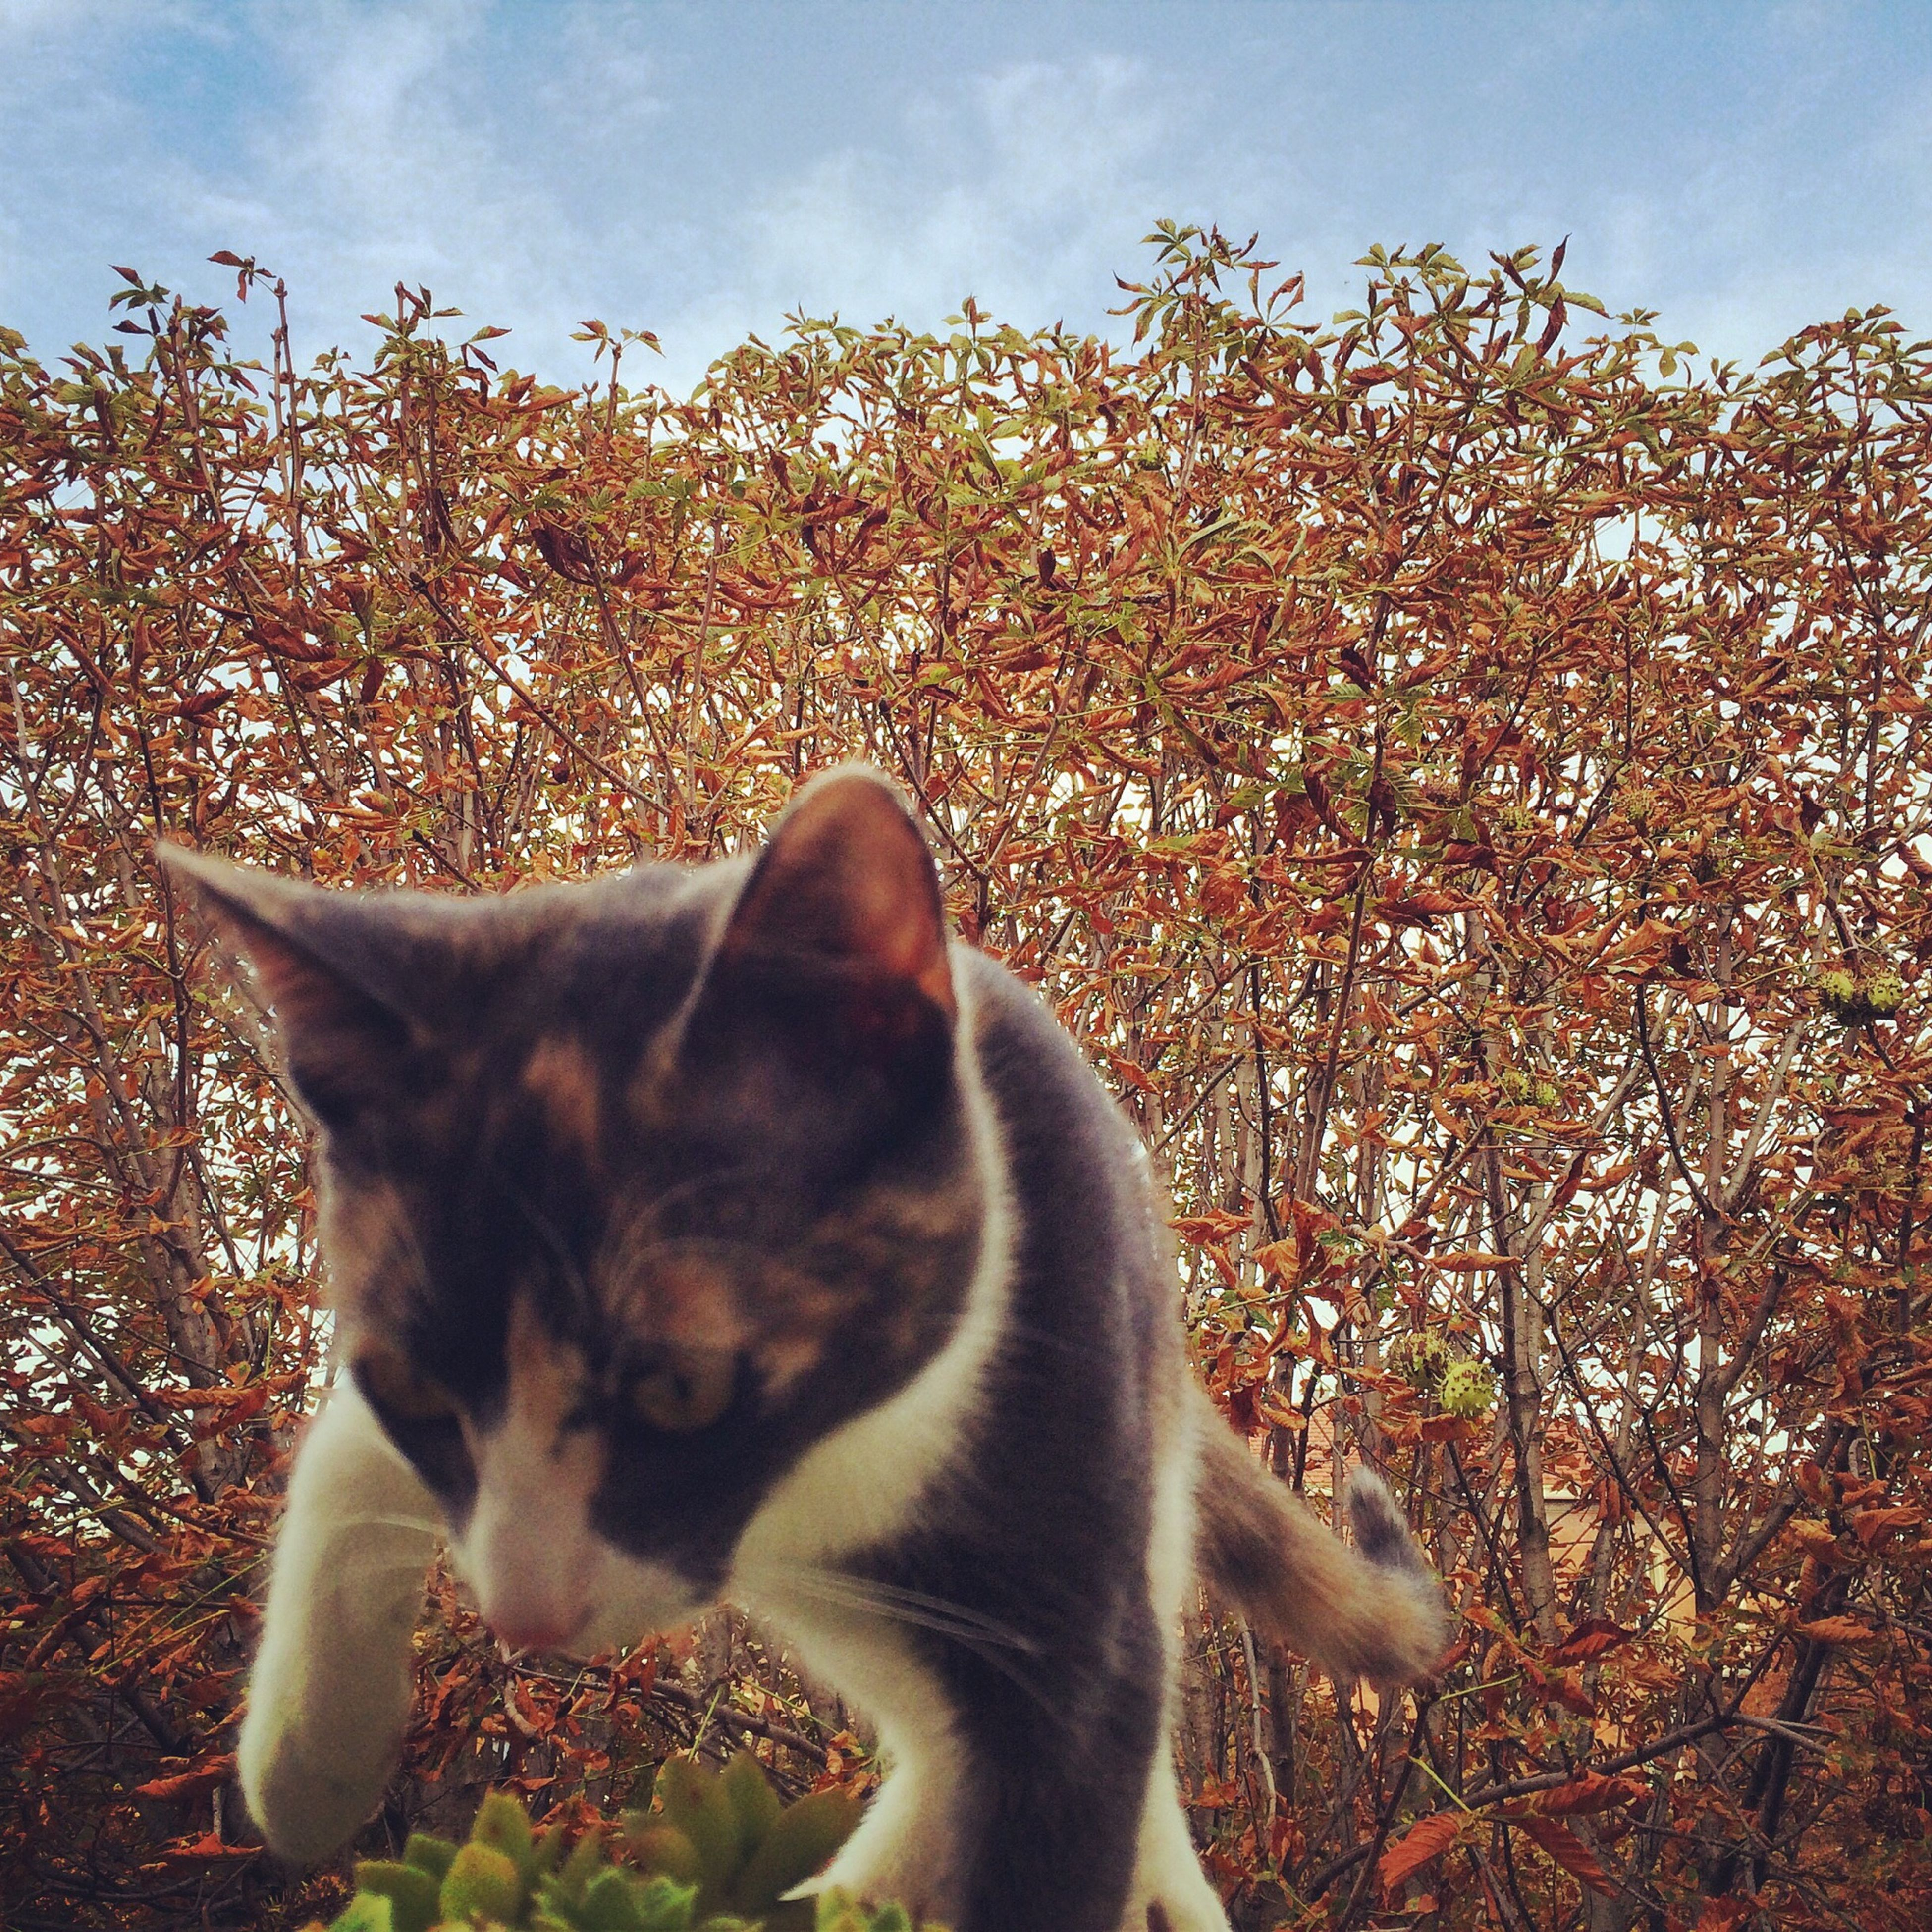 pets, animal themes, one animal, domestic animals, mammal, domestic cat, cat, feline, sky, tree, flower, nature, whisker, relaxation, day, sitting, growth, looking away, plant, outdoors